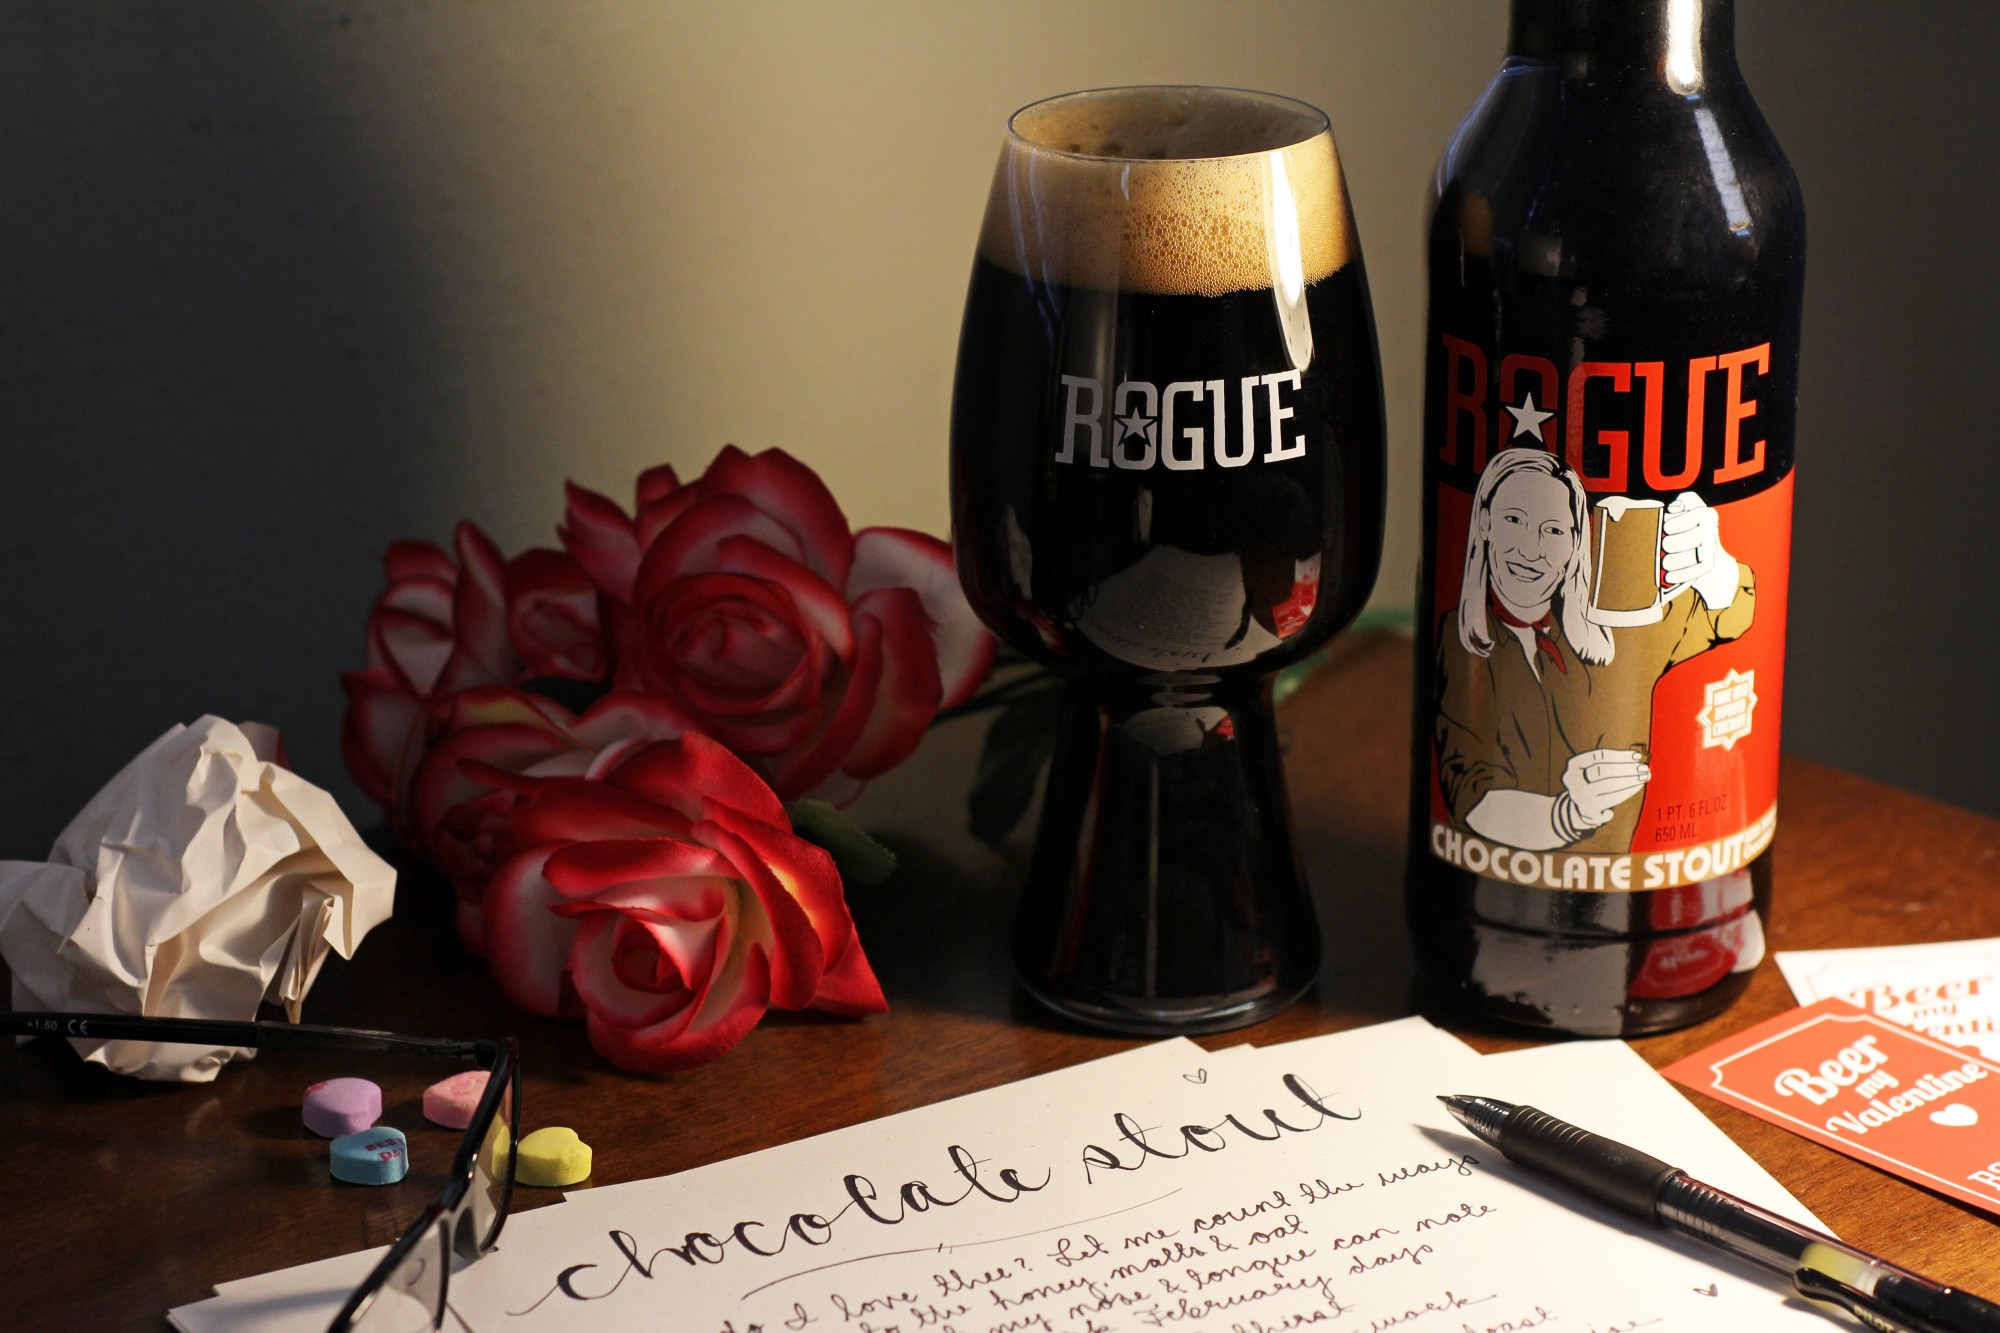 An Ode to Rogue Chocolate Stout – Rogue Ales & Spirits